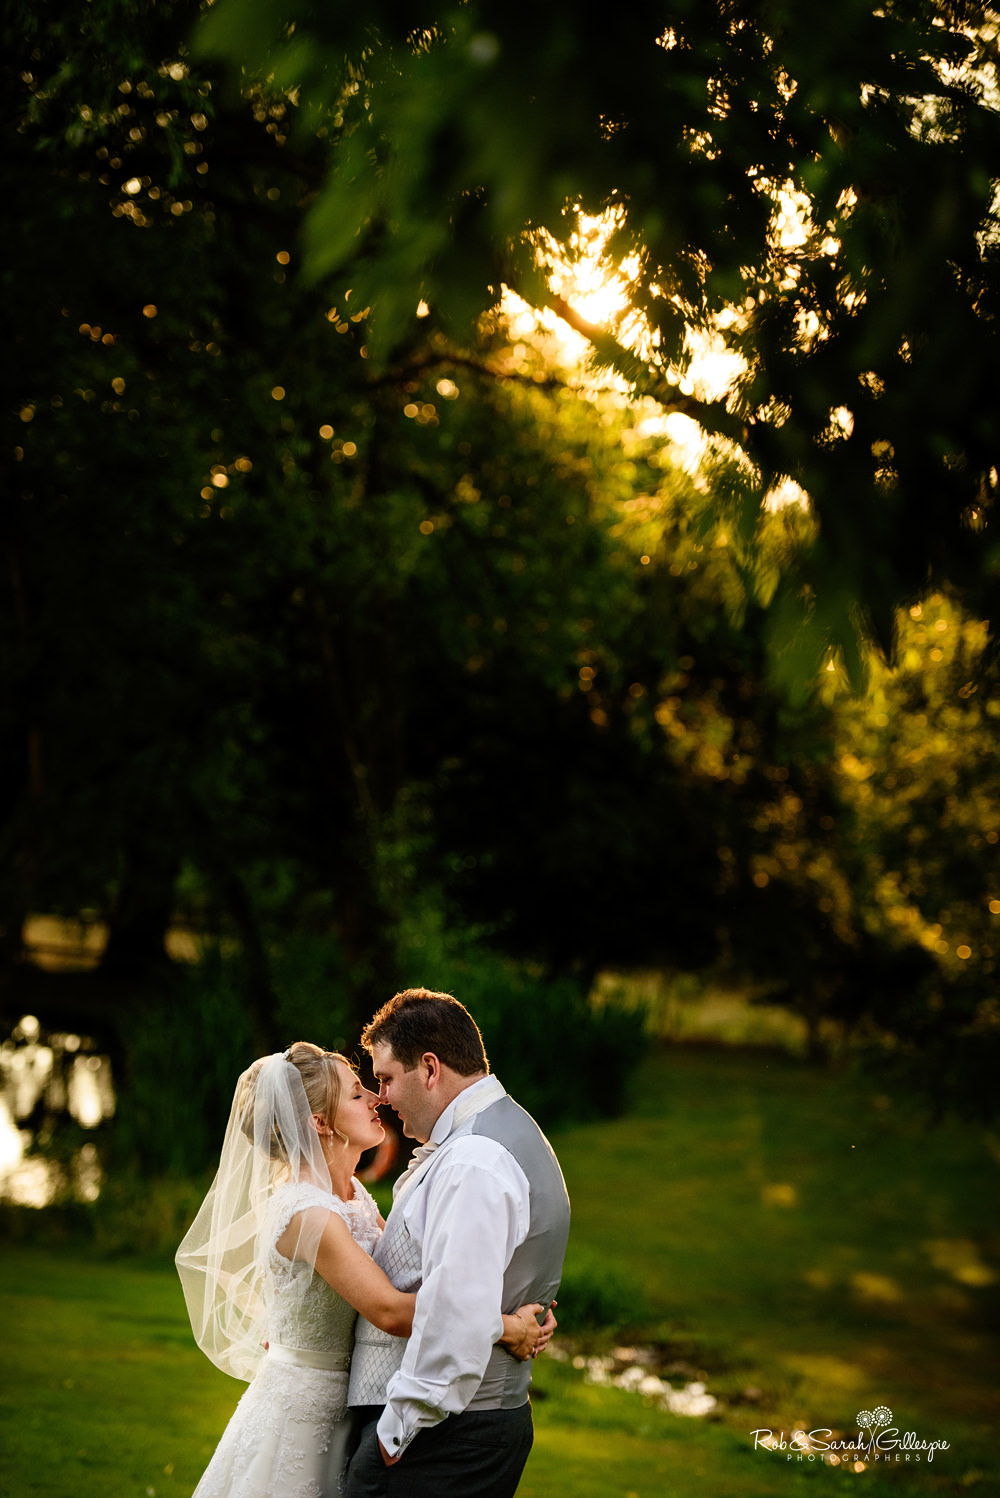 Bride and groom at Gorcott Hall - relaxing in beautiful evening light